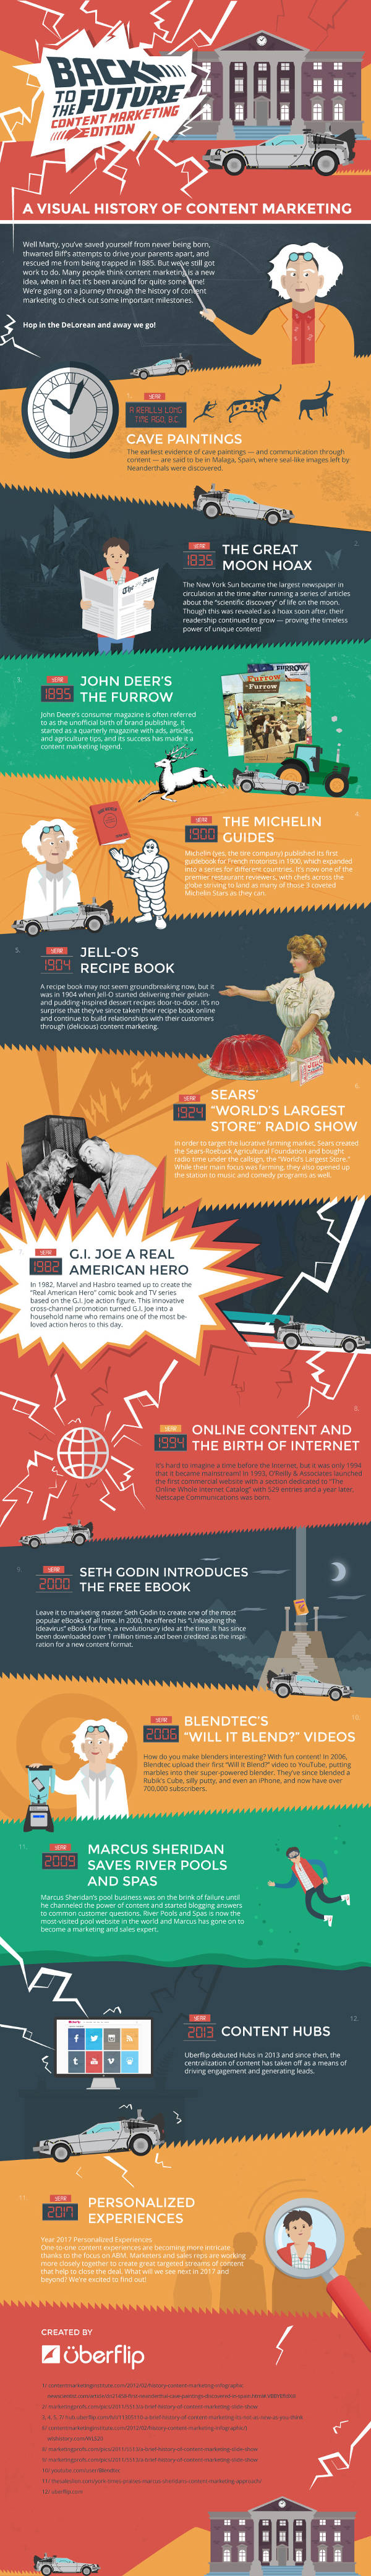 Infographic A Visual History of Content Marketing